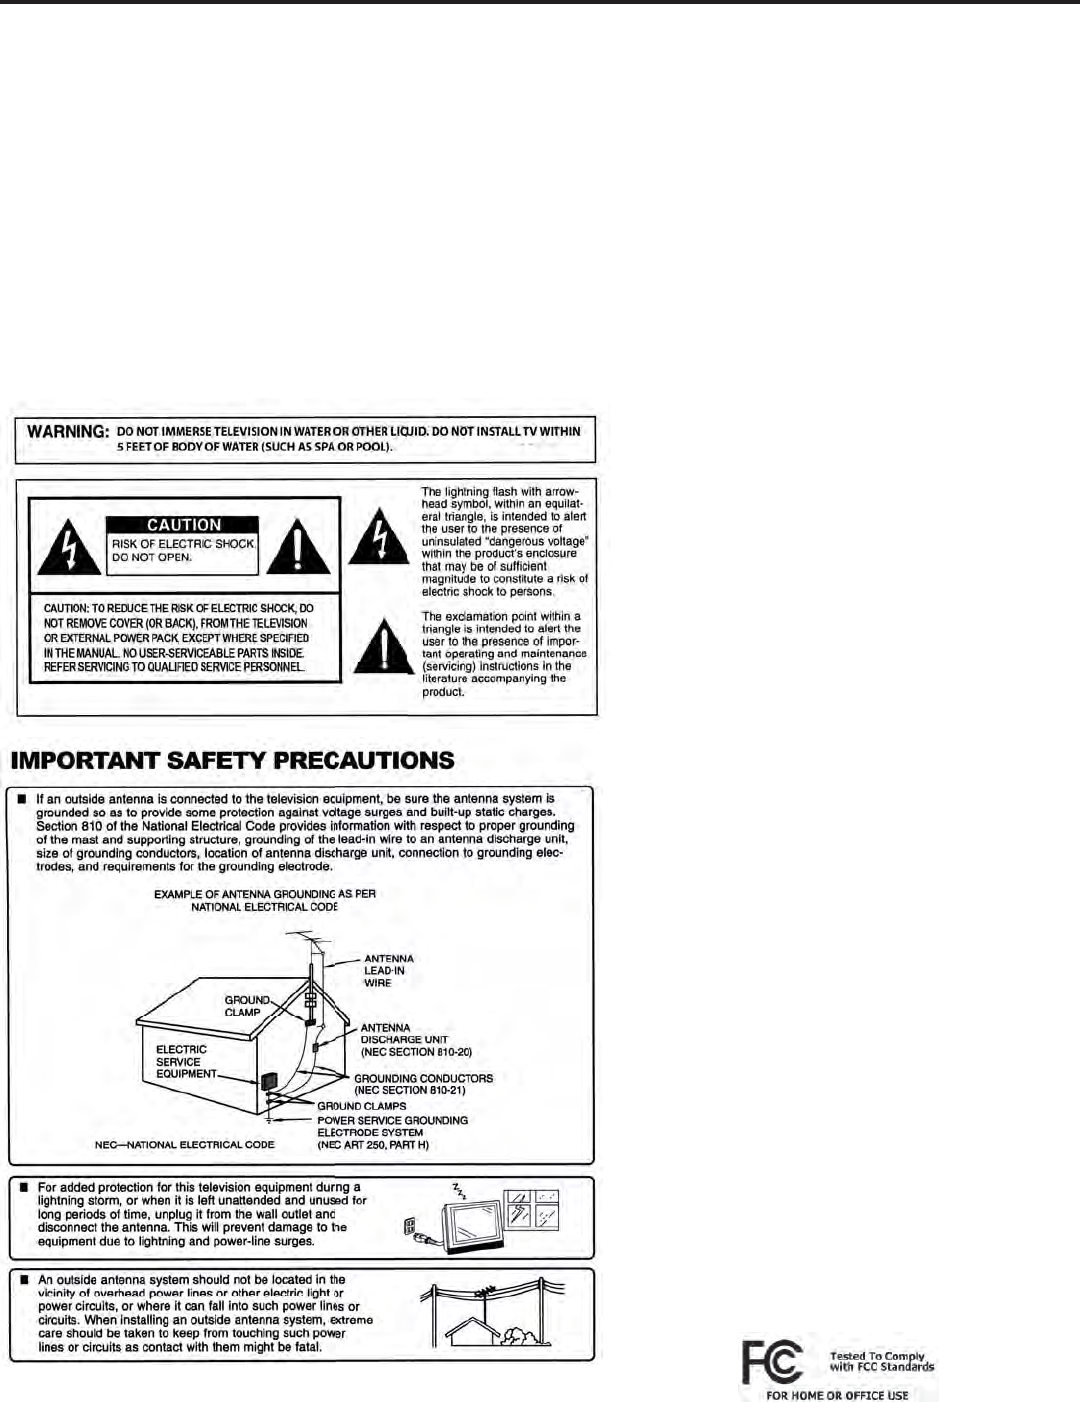 Page 3 of SunBriteTV Flat Panel Television 5510HD User Guide